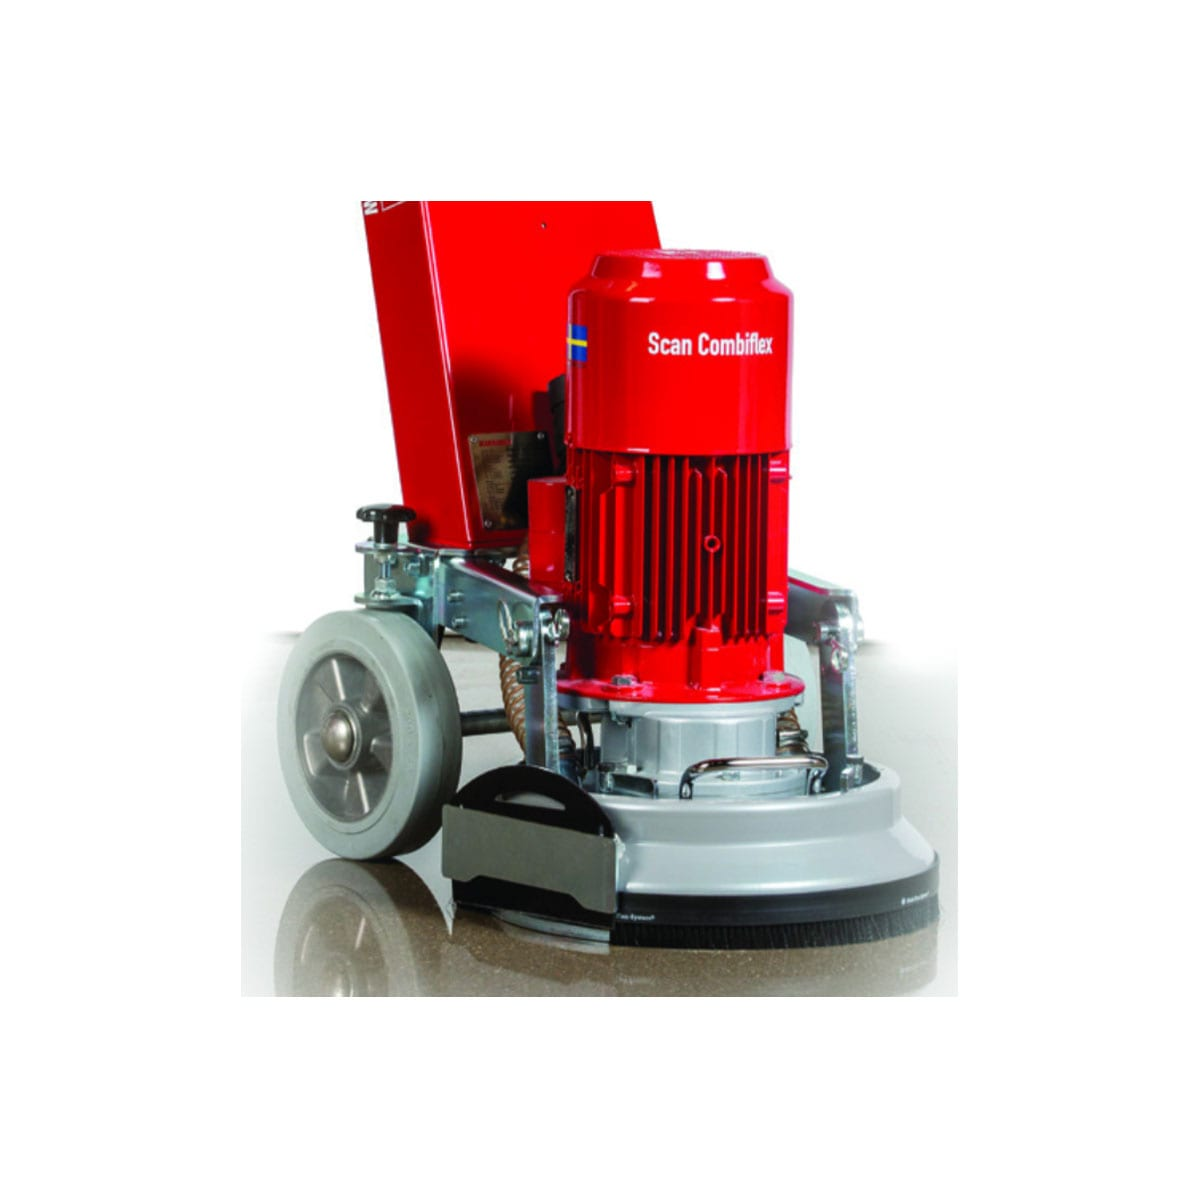 Front Scanmaskin 330 Concrete Grinder - Turning Point Supply